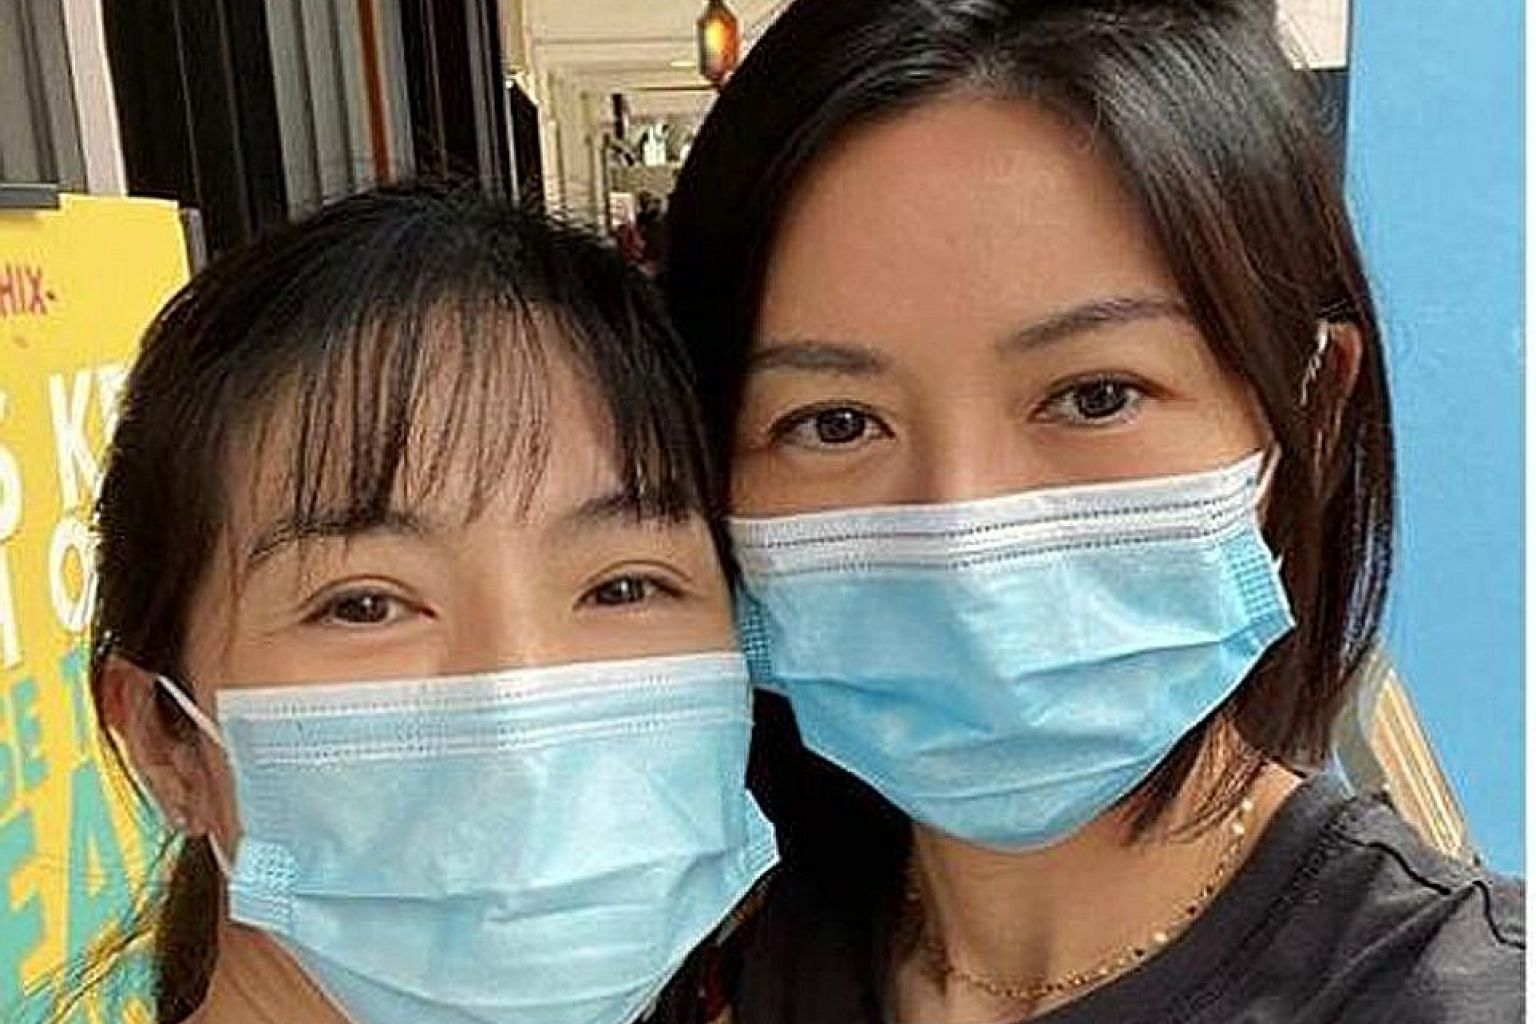 SUN AND YOUNG GO SIGHTSEEING: They were both wearing face masks, but fans recognised Stefanie Sun (left) and Charlie Young (far left) all the same. On Tuesday, home-grown singer Sun posted photos taken in Arab Street with Hong Kong actress Young. Sun